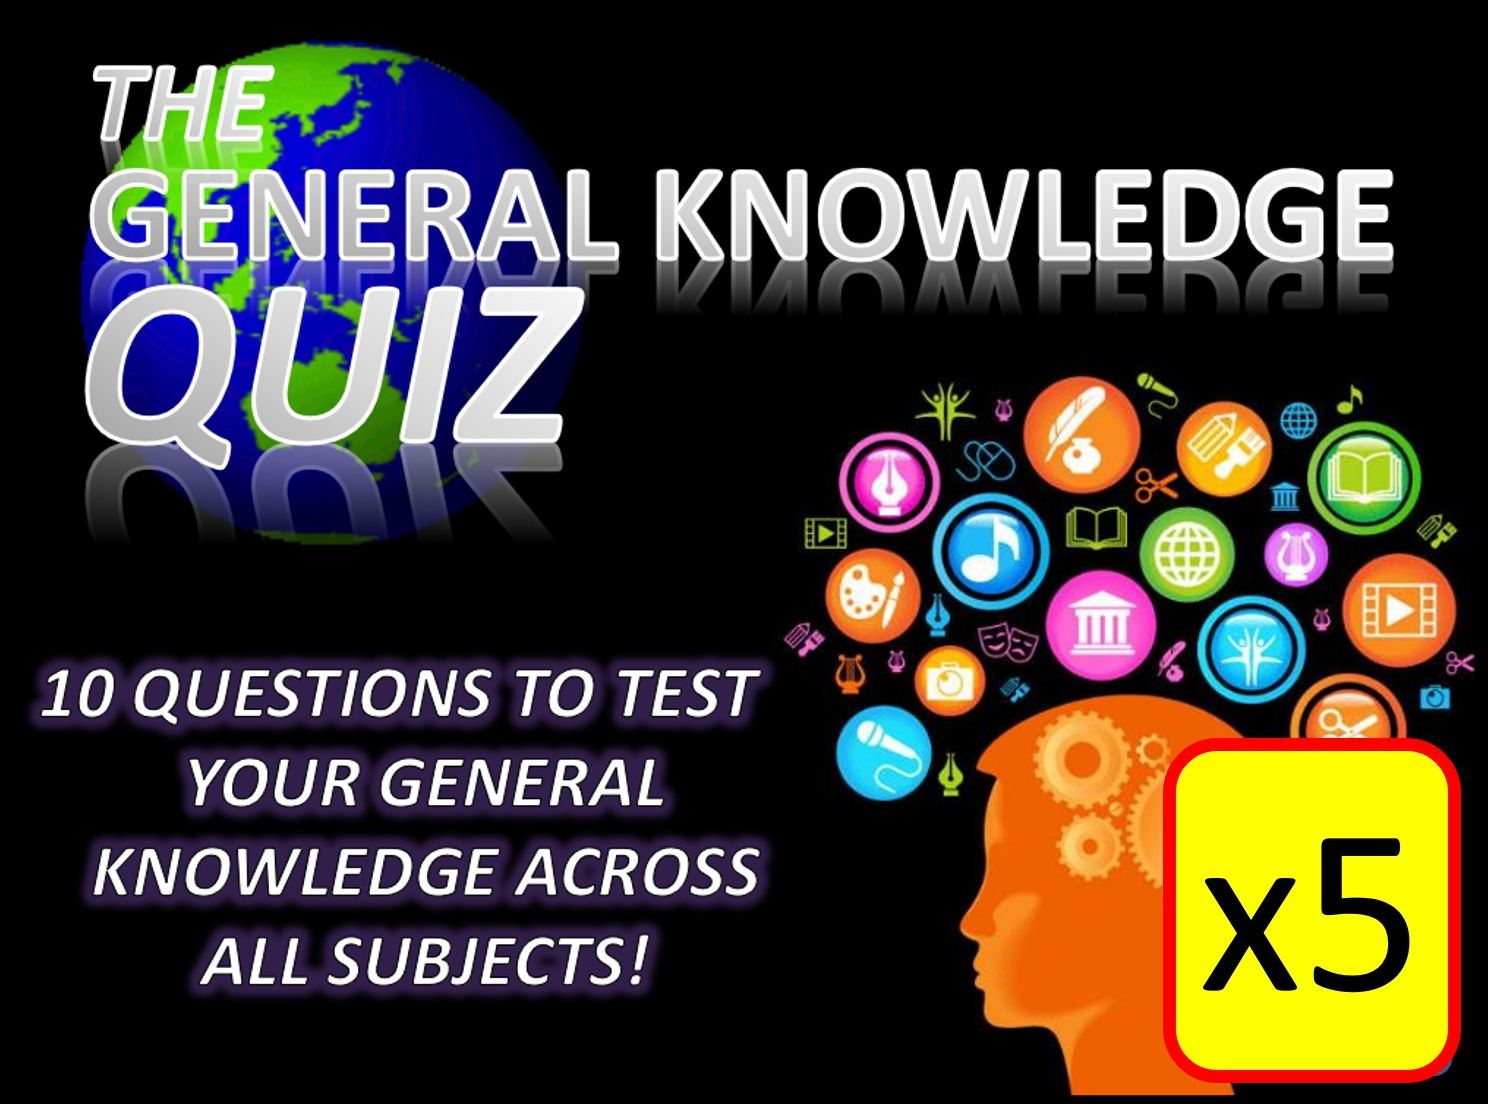 5 x The General Knowledge Pub Quiz (#6-10) Form Tutor Time Cross Curricular Settler End of Term